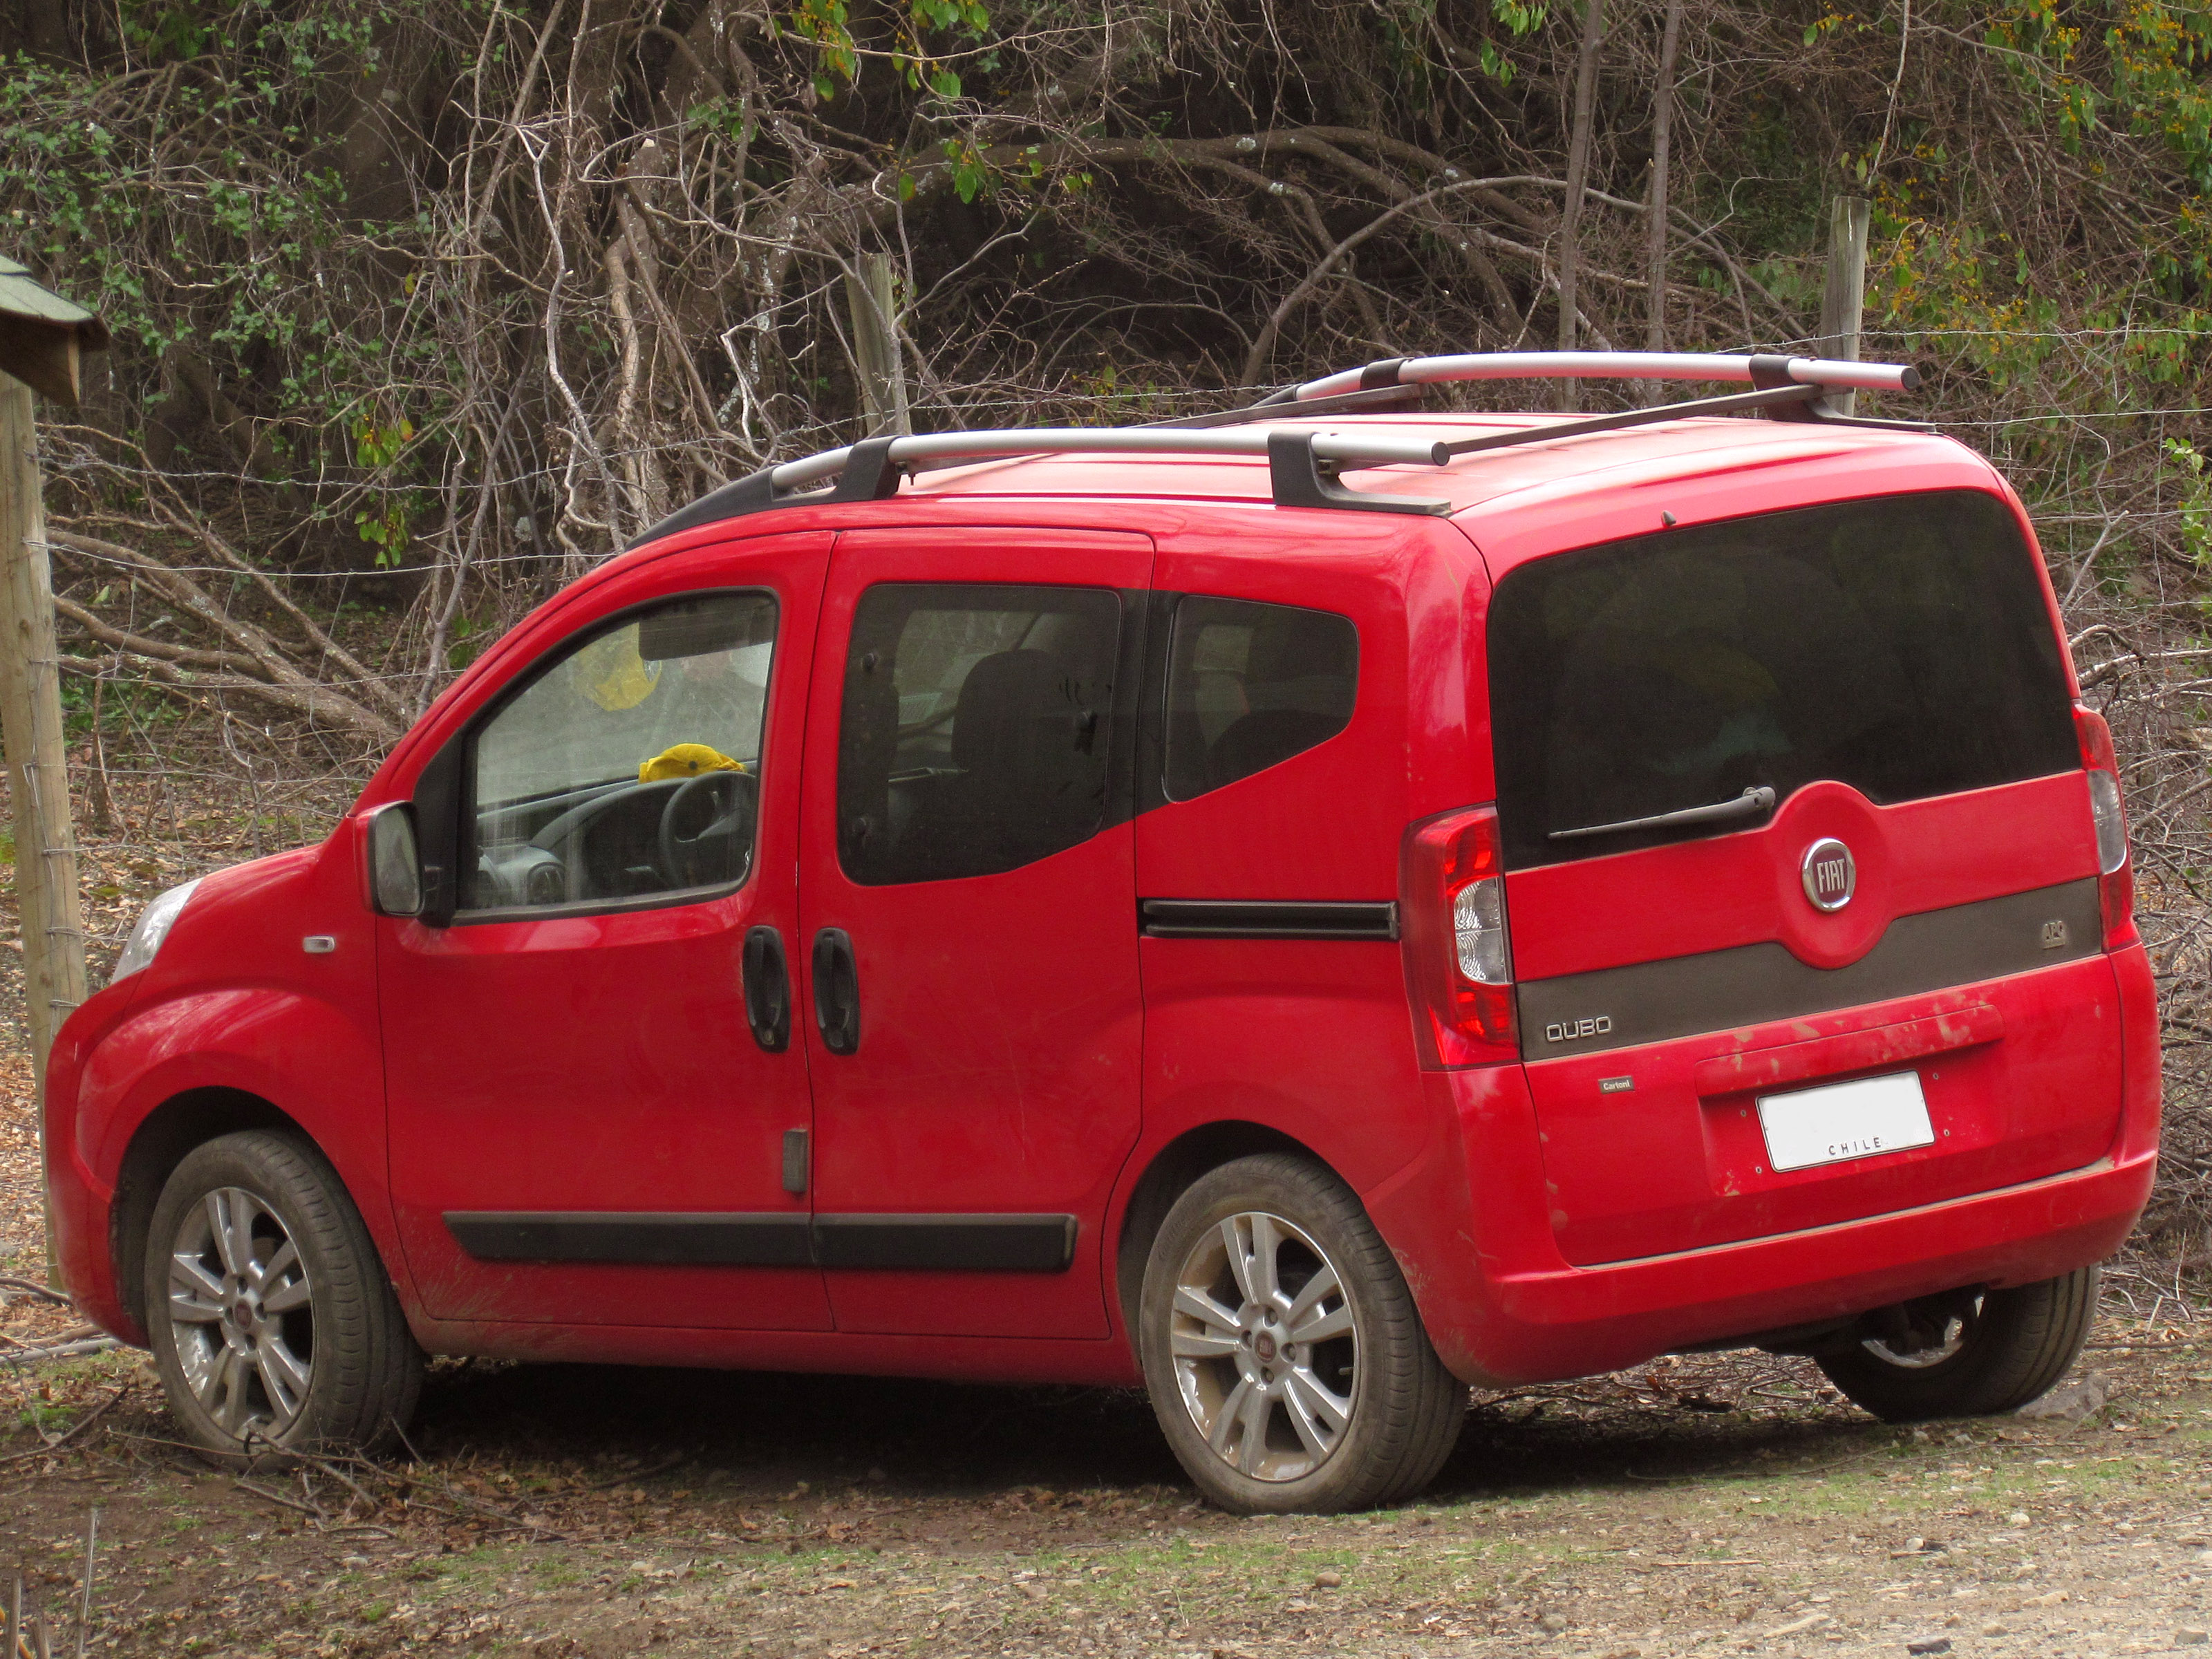 Sizes of Tires and Rims for Fiat Qubo - Cararac.com